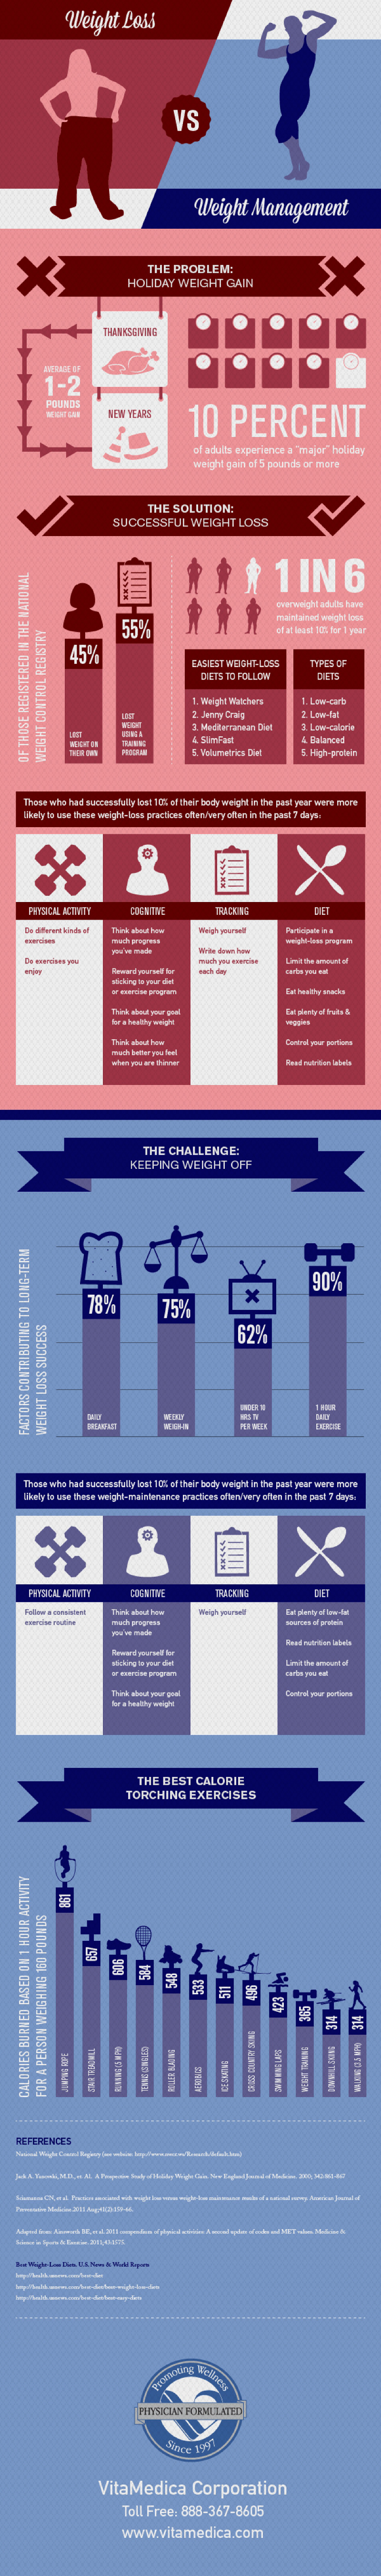 Comparison of Weight Loss and Management